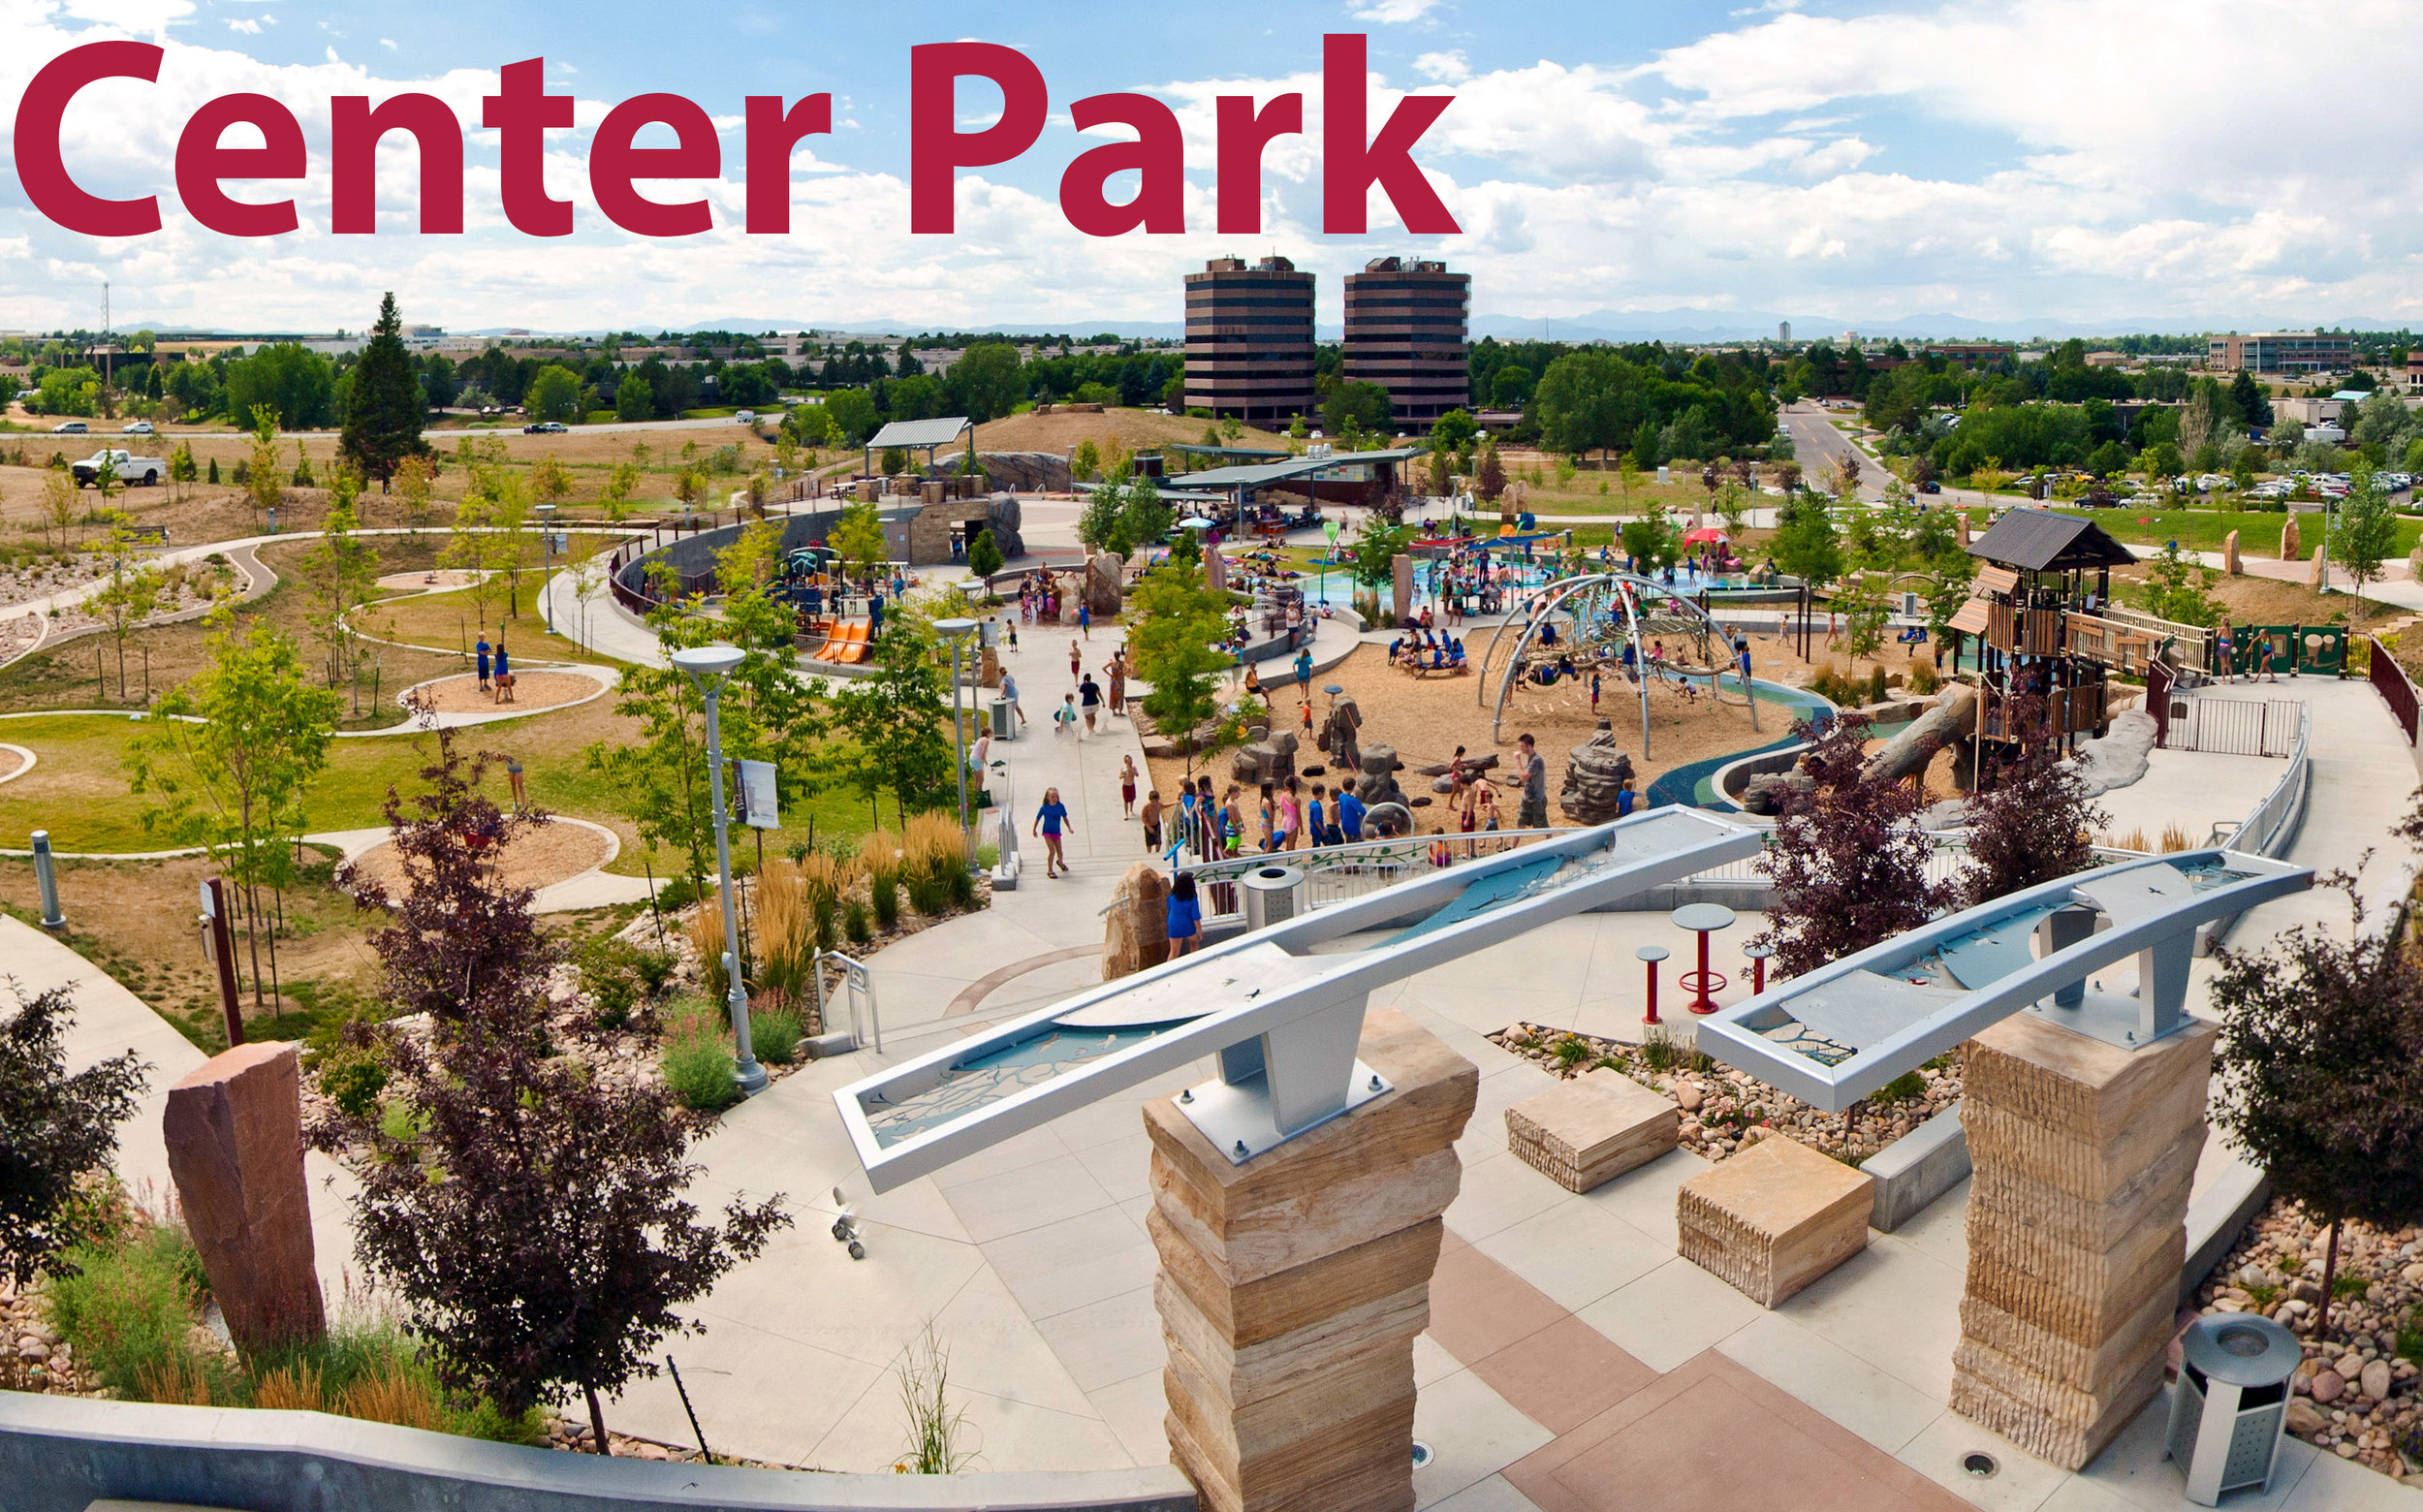 Axel's    Center Park    in Centennial has won numerous industry awards. Last year it was voted one of the Top 10 Splash Pads in USAToday's Readers Choice Awards.